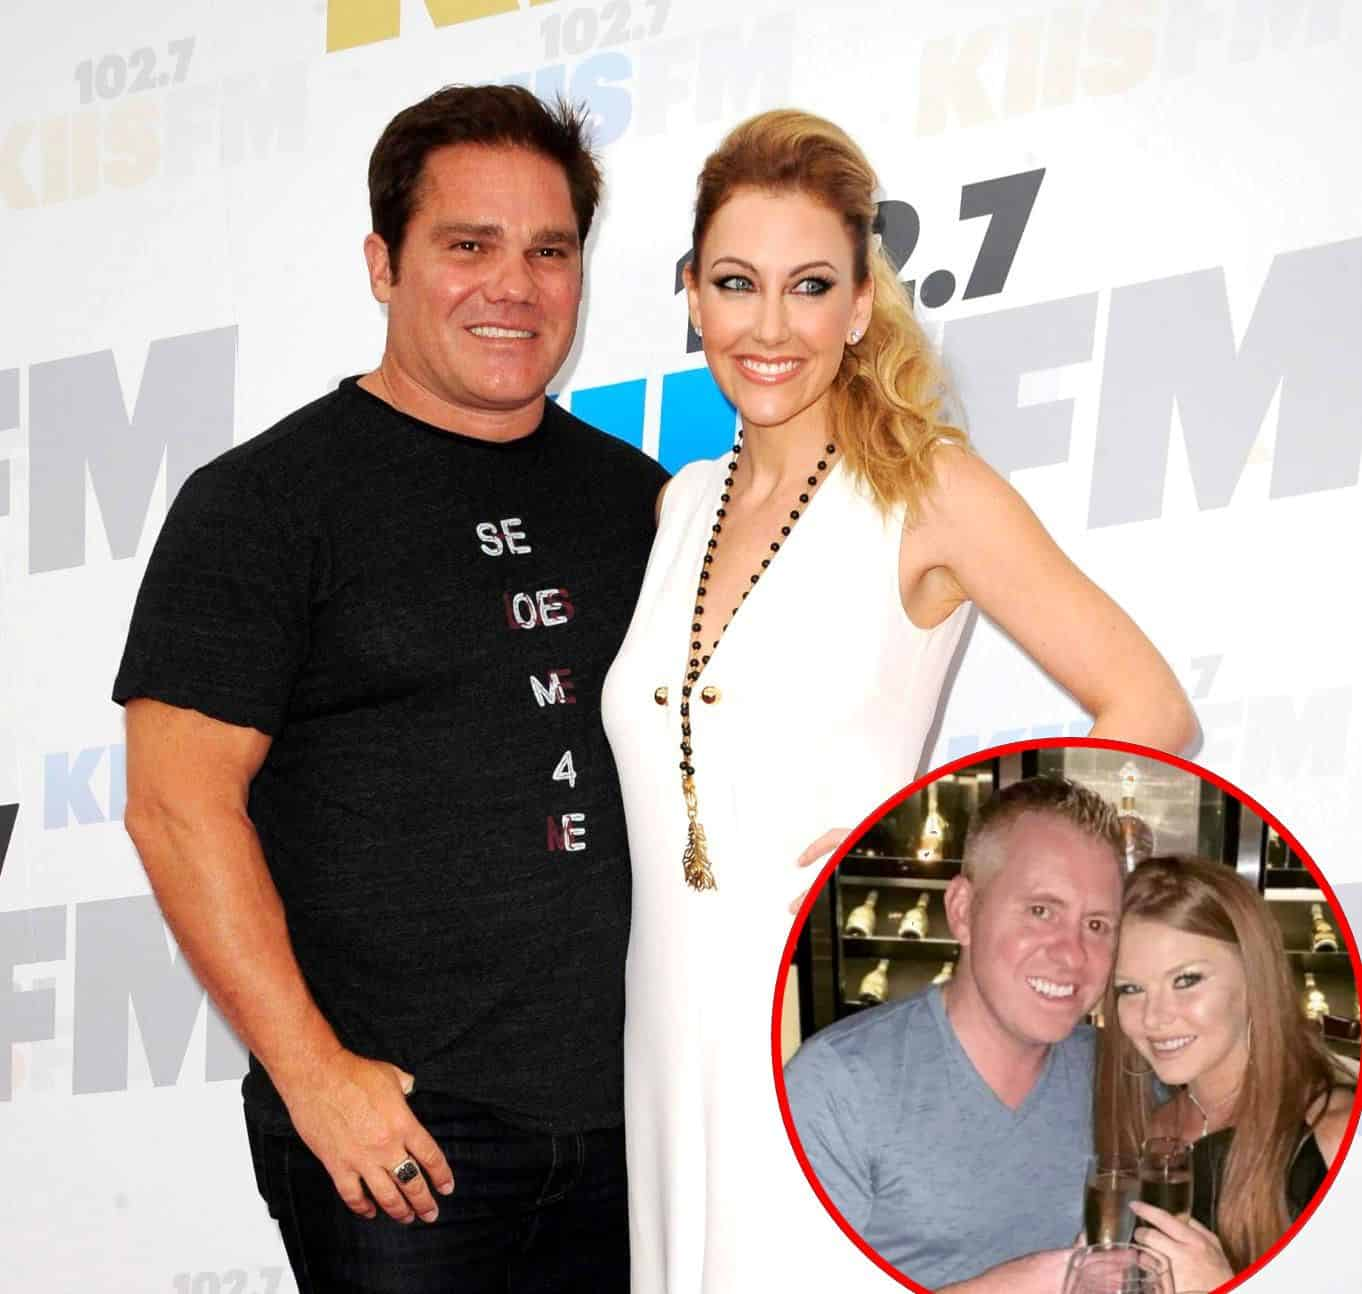 """RHOD: Travis Hollman Offers Update on Bryan Redmond's After Cheating Scandal, Addresses Rumors About His Own Marriage, And if Stephanie Will Return to Show in a """"Friend"""" Role"""